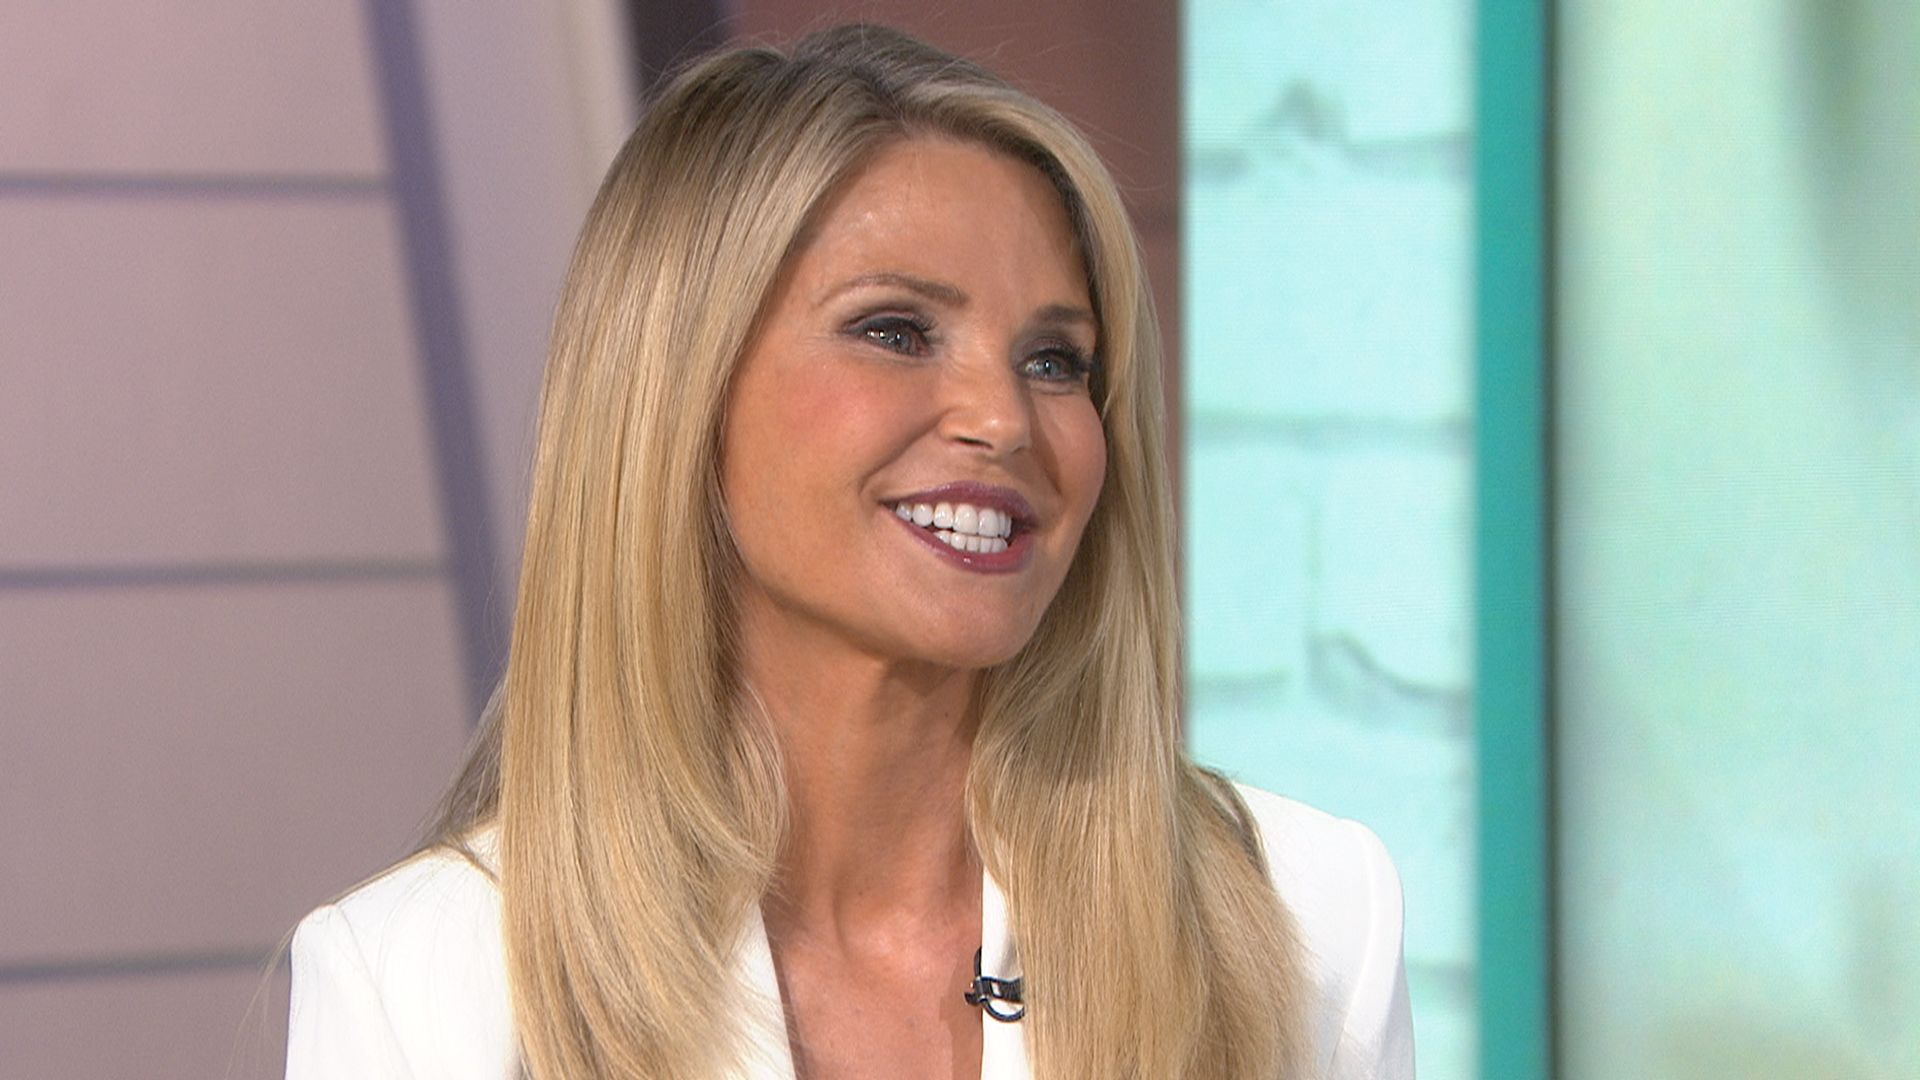 The secret to looking young? Christie Brinkley, 61, divulges her top tips